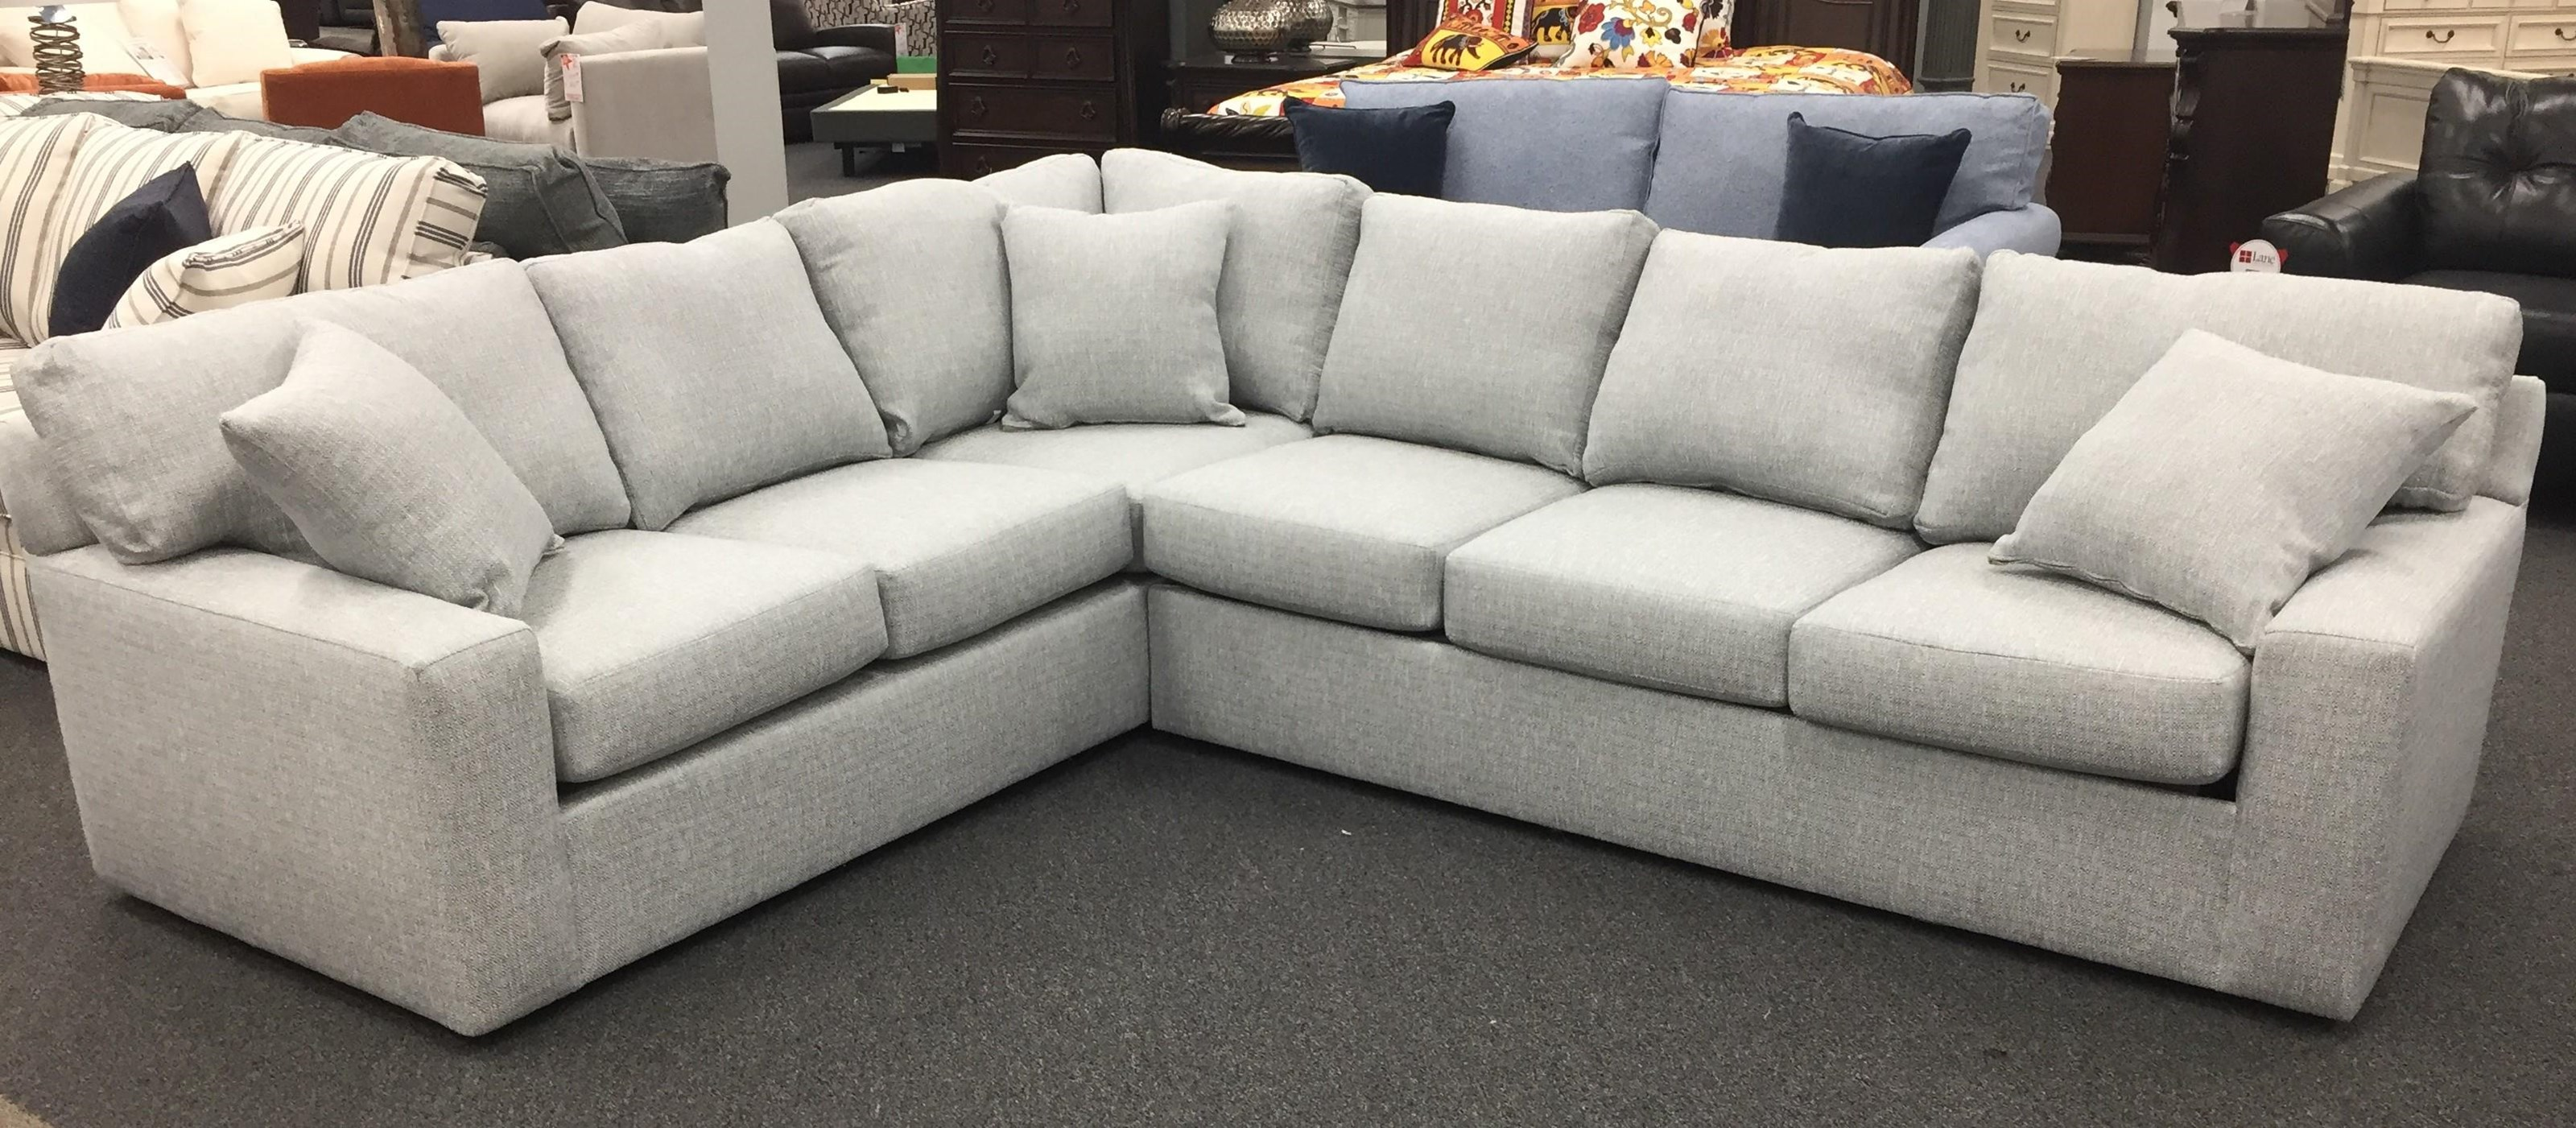 503-5060 SECTIONAL Two Piece Sleeper Sectional by Overnight Sofa at Furniture Fair - North Carolina